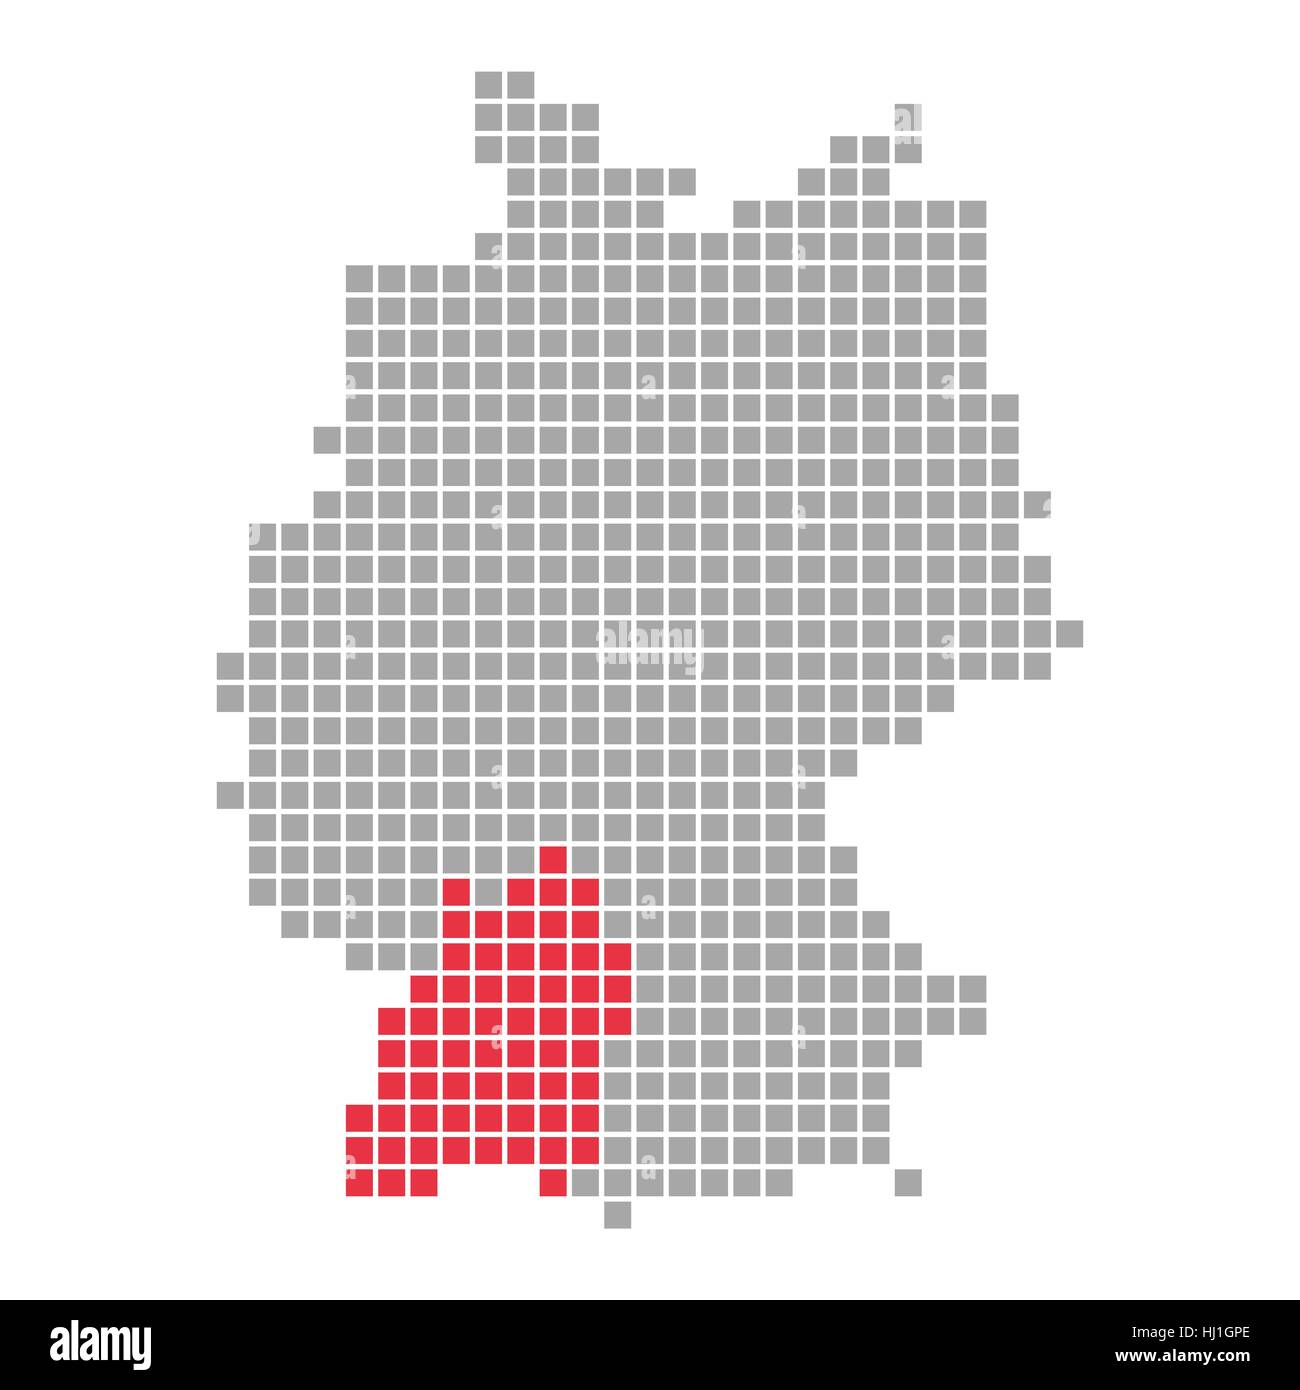 German States Map Stock Photos & German States Map Stock Images - Alamy